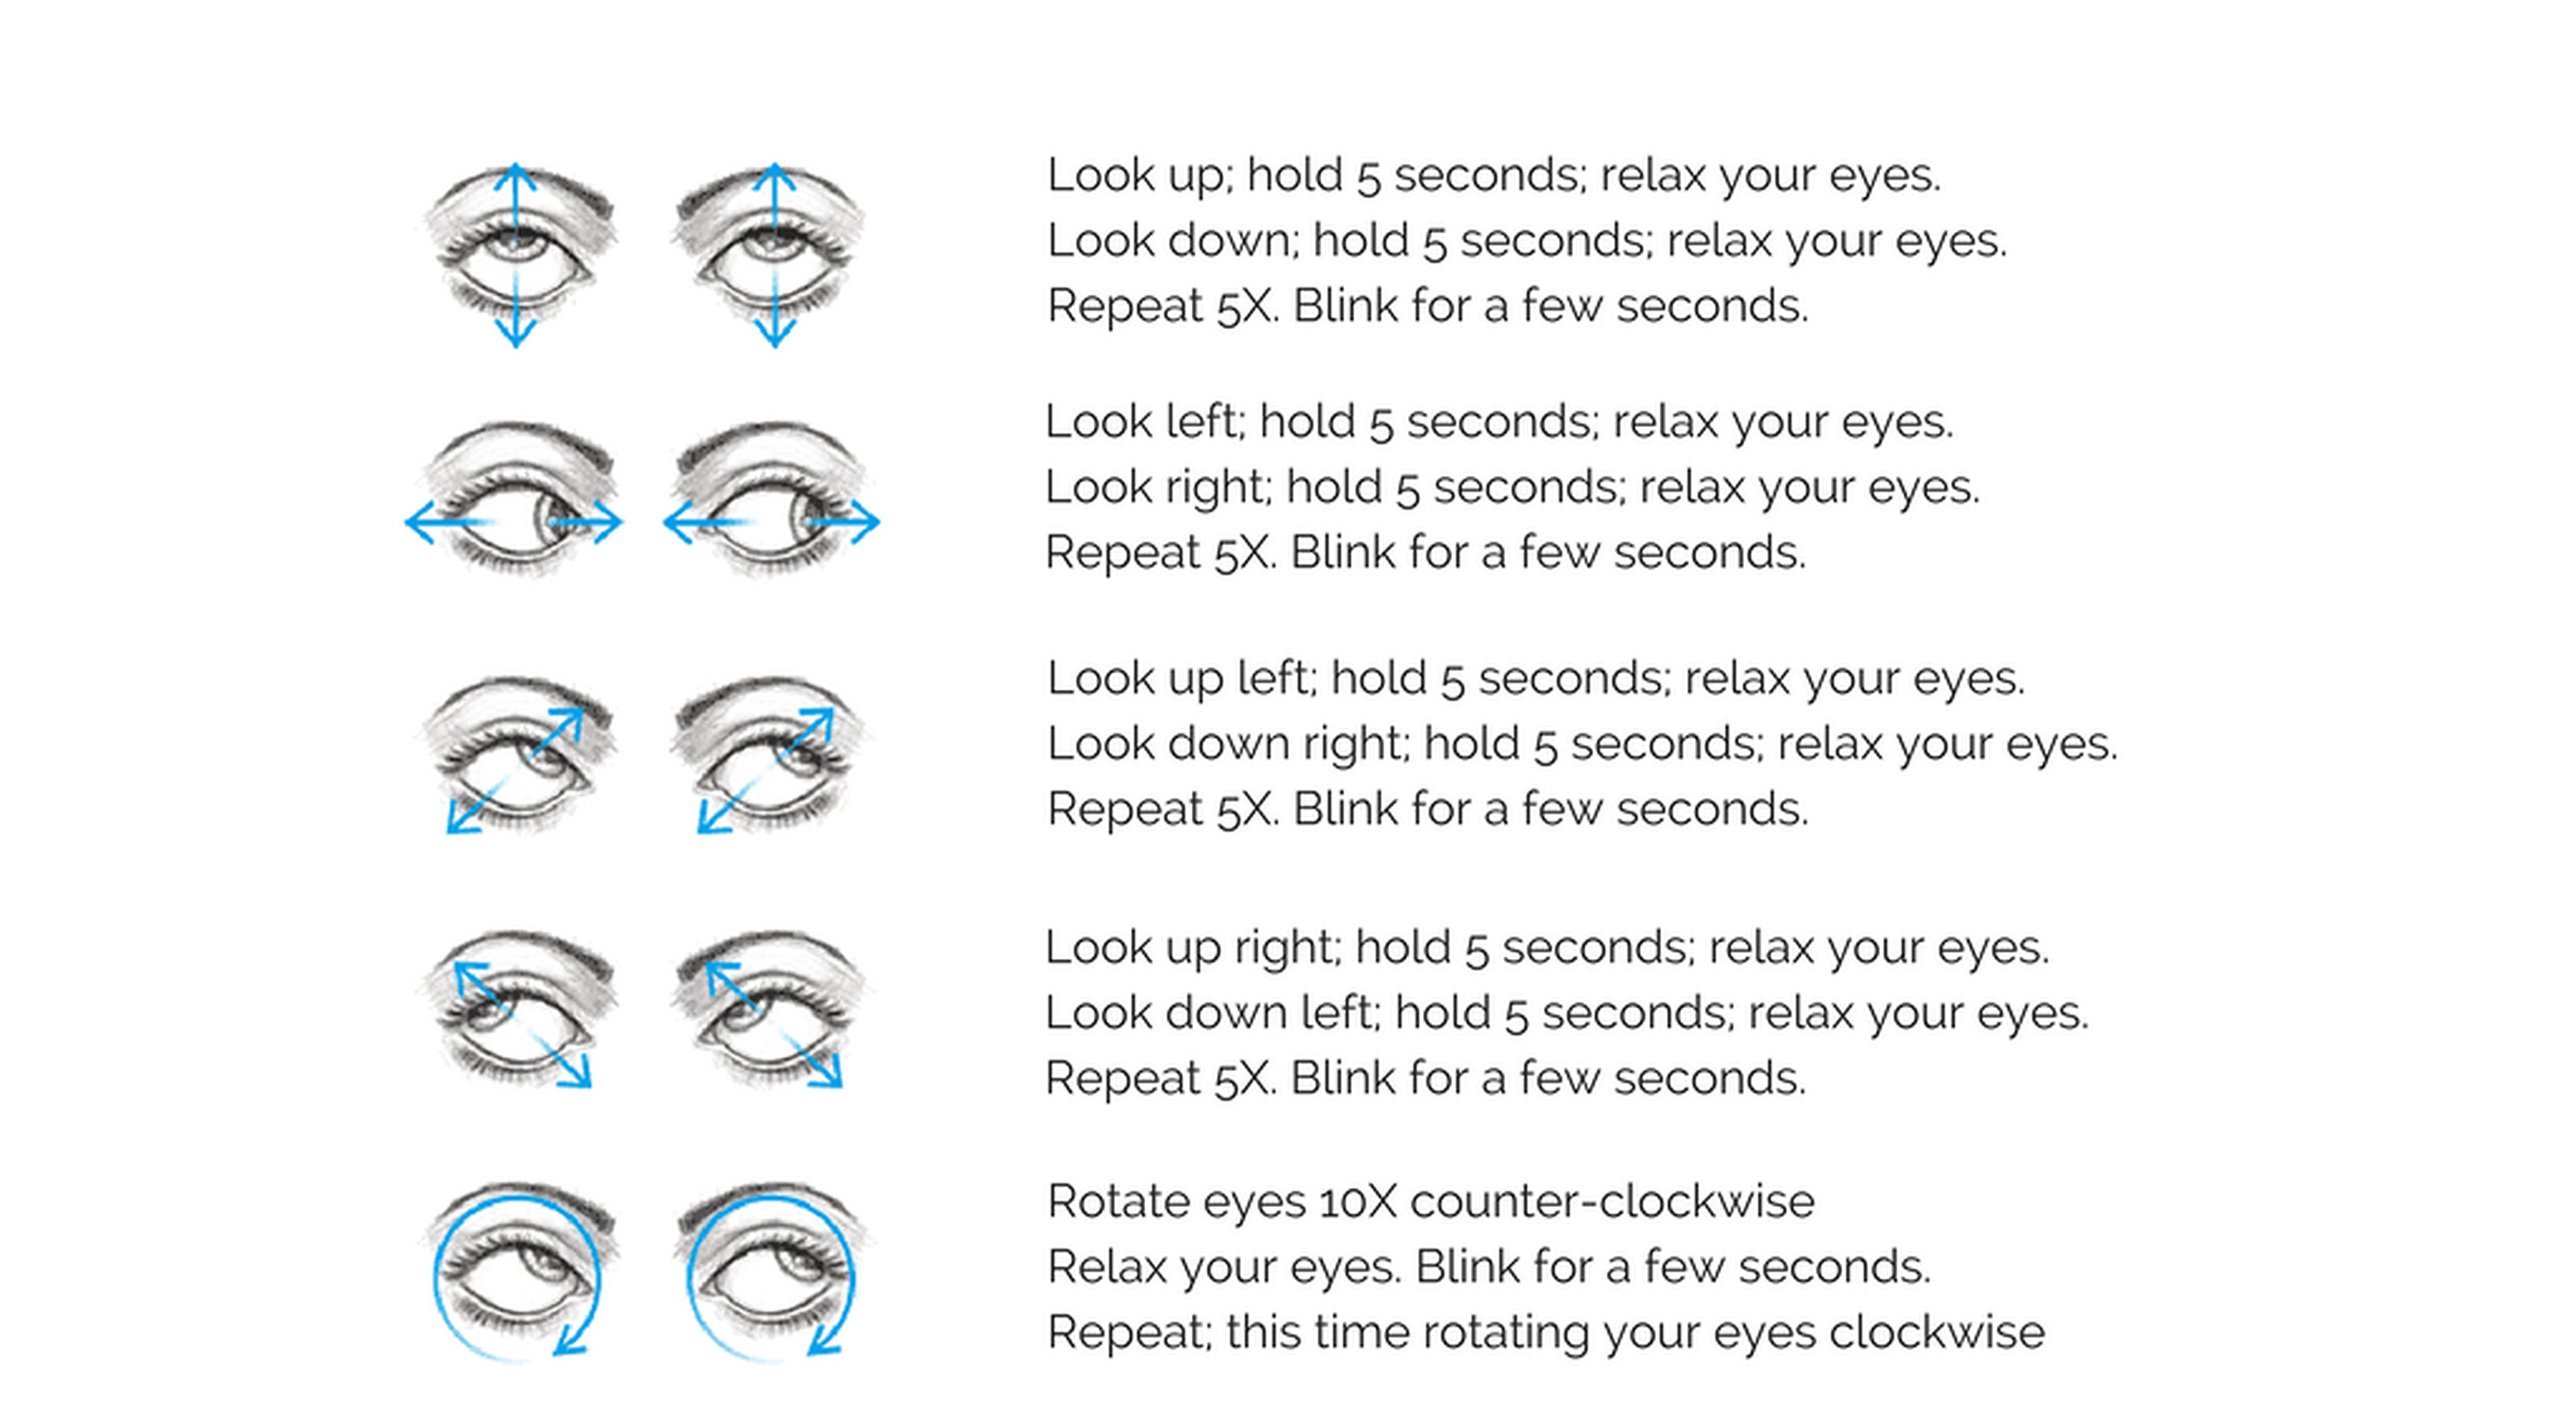 Do these eye exercises daily to increase eye strength and reduce fatigue